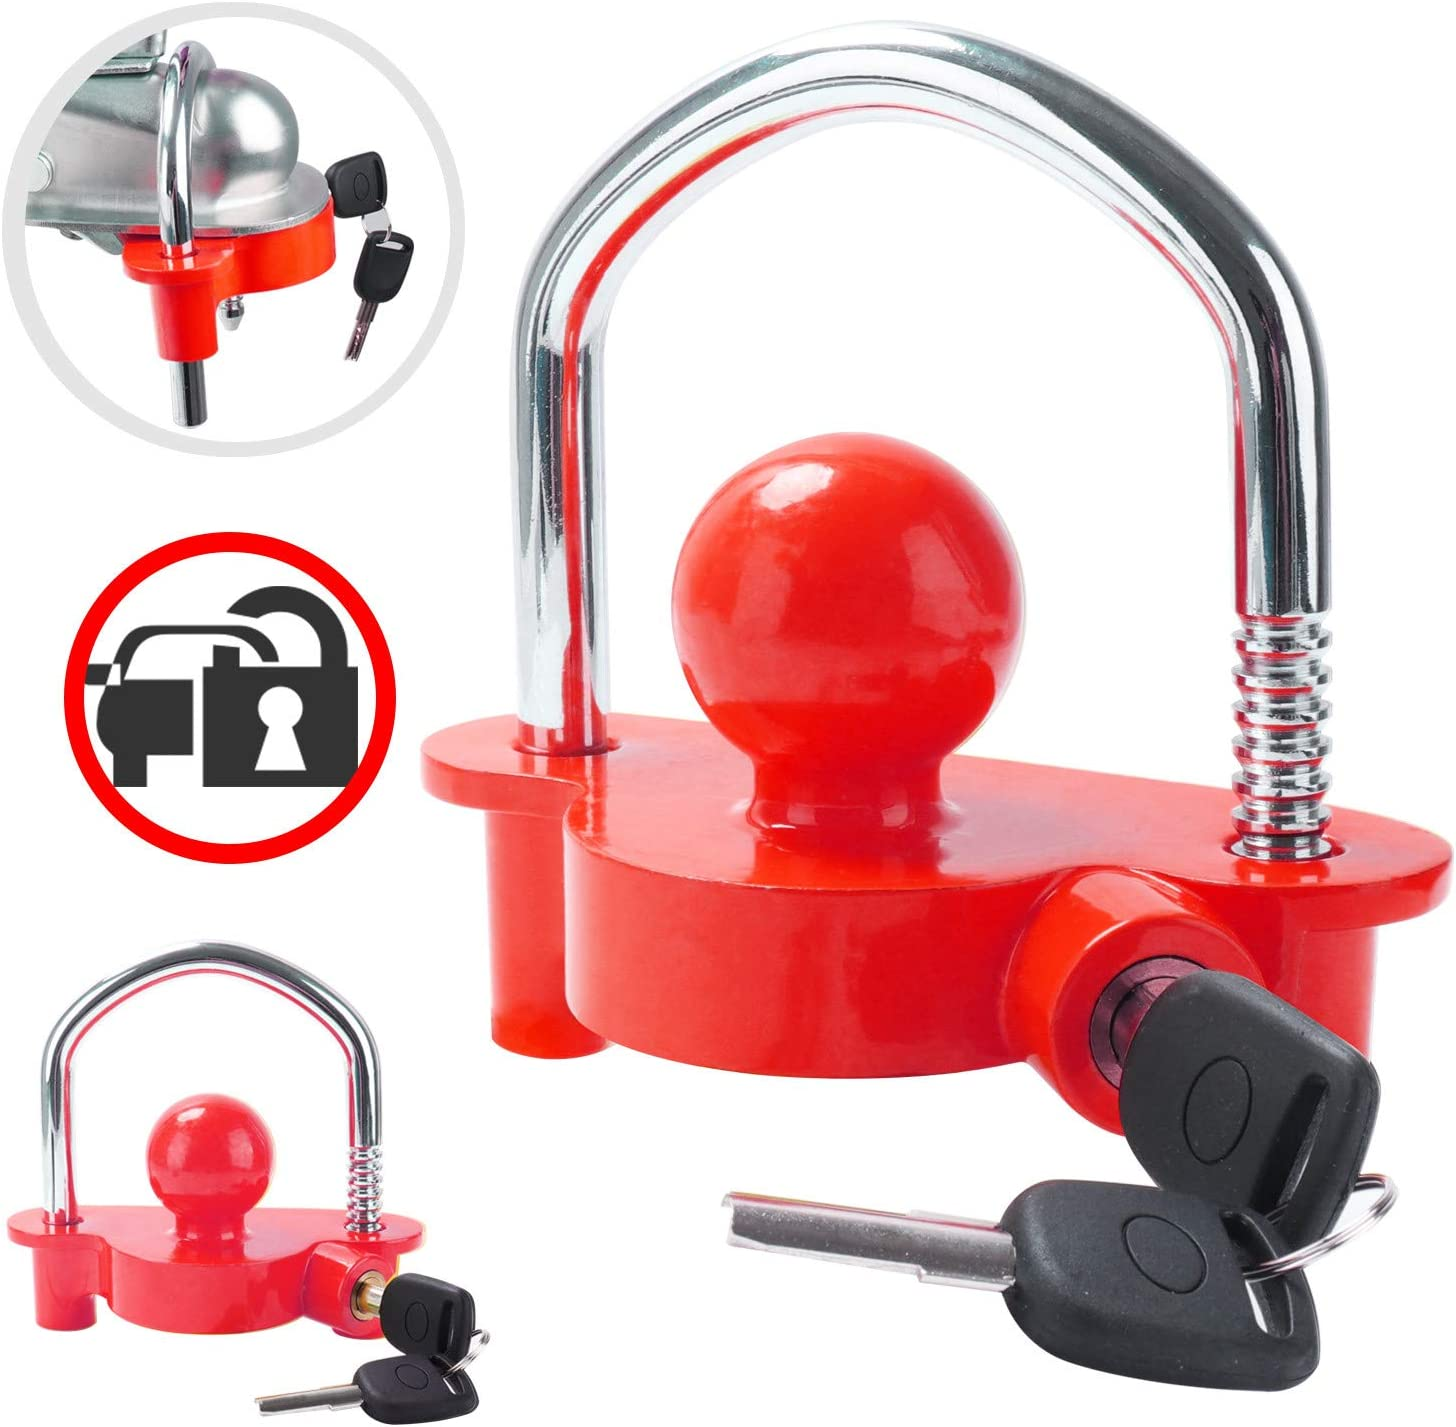 Tevlaphee Universal Trailer Selling Ball Tow Heavy Adjustable Hitch Lock Daily bargain sale